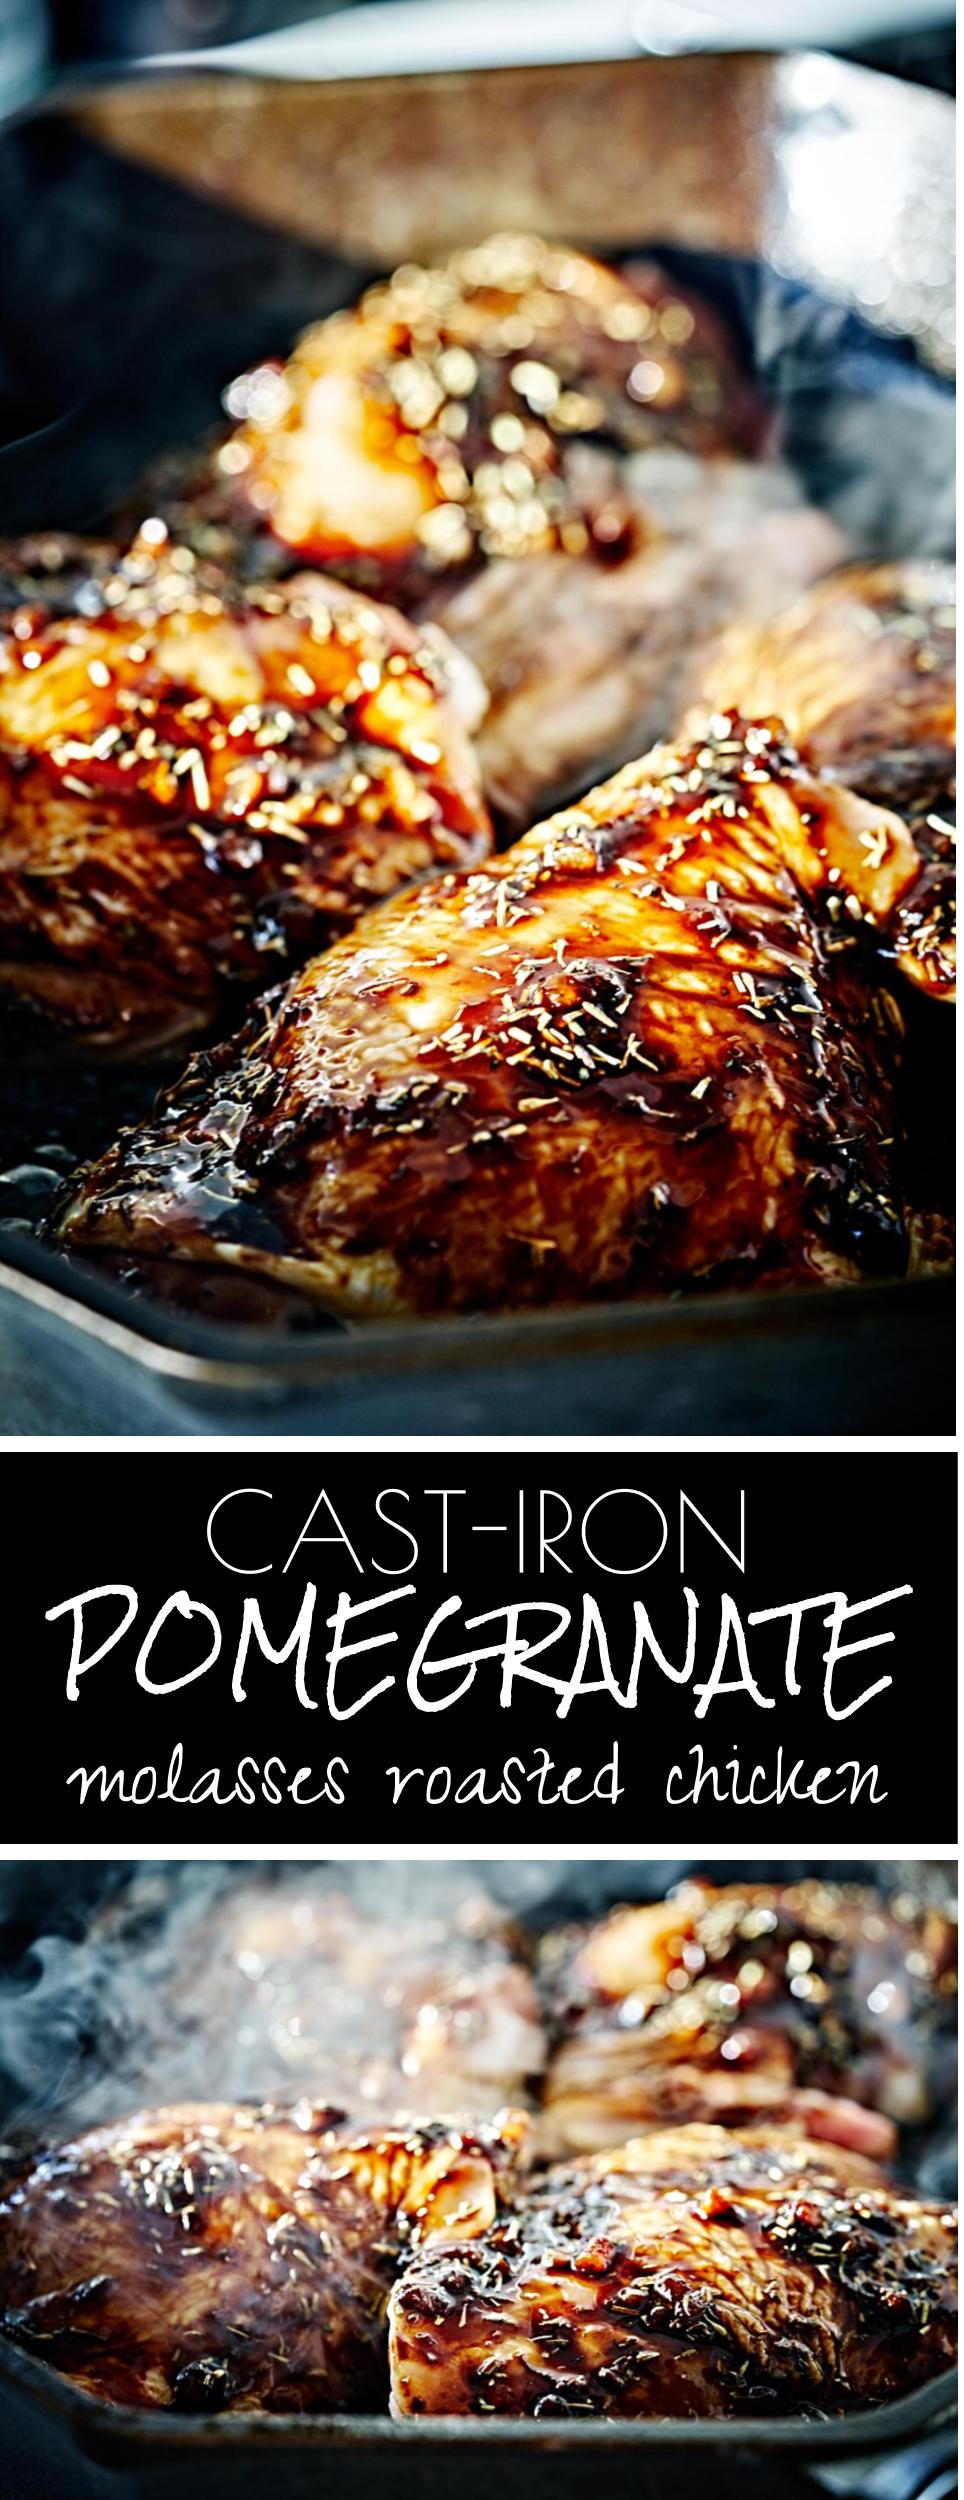 Cast-Iron Pomegranate Molasses Roasted Chicken | Proportional Plate | Why cook chicken in a cast iron?